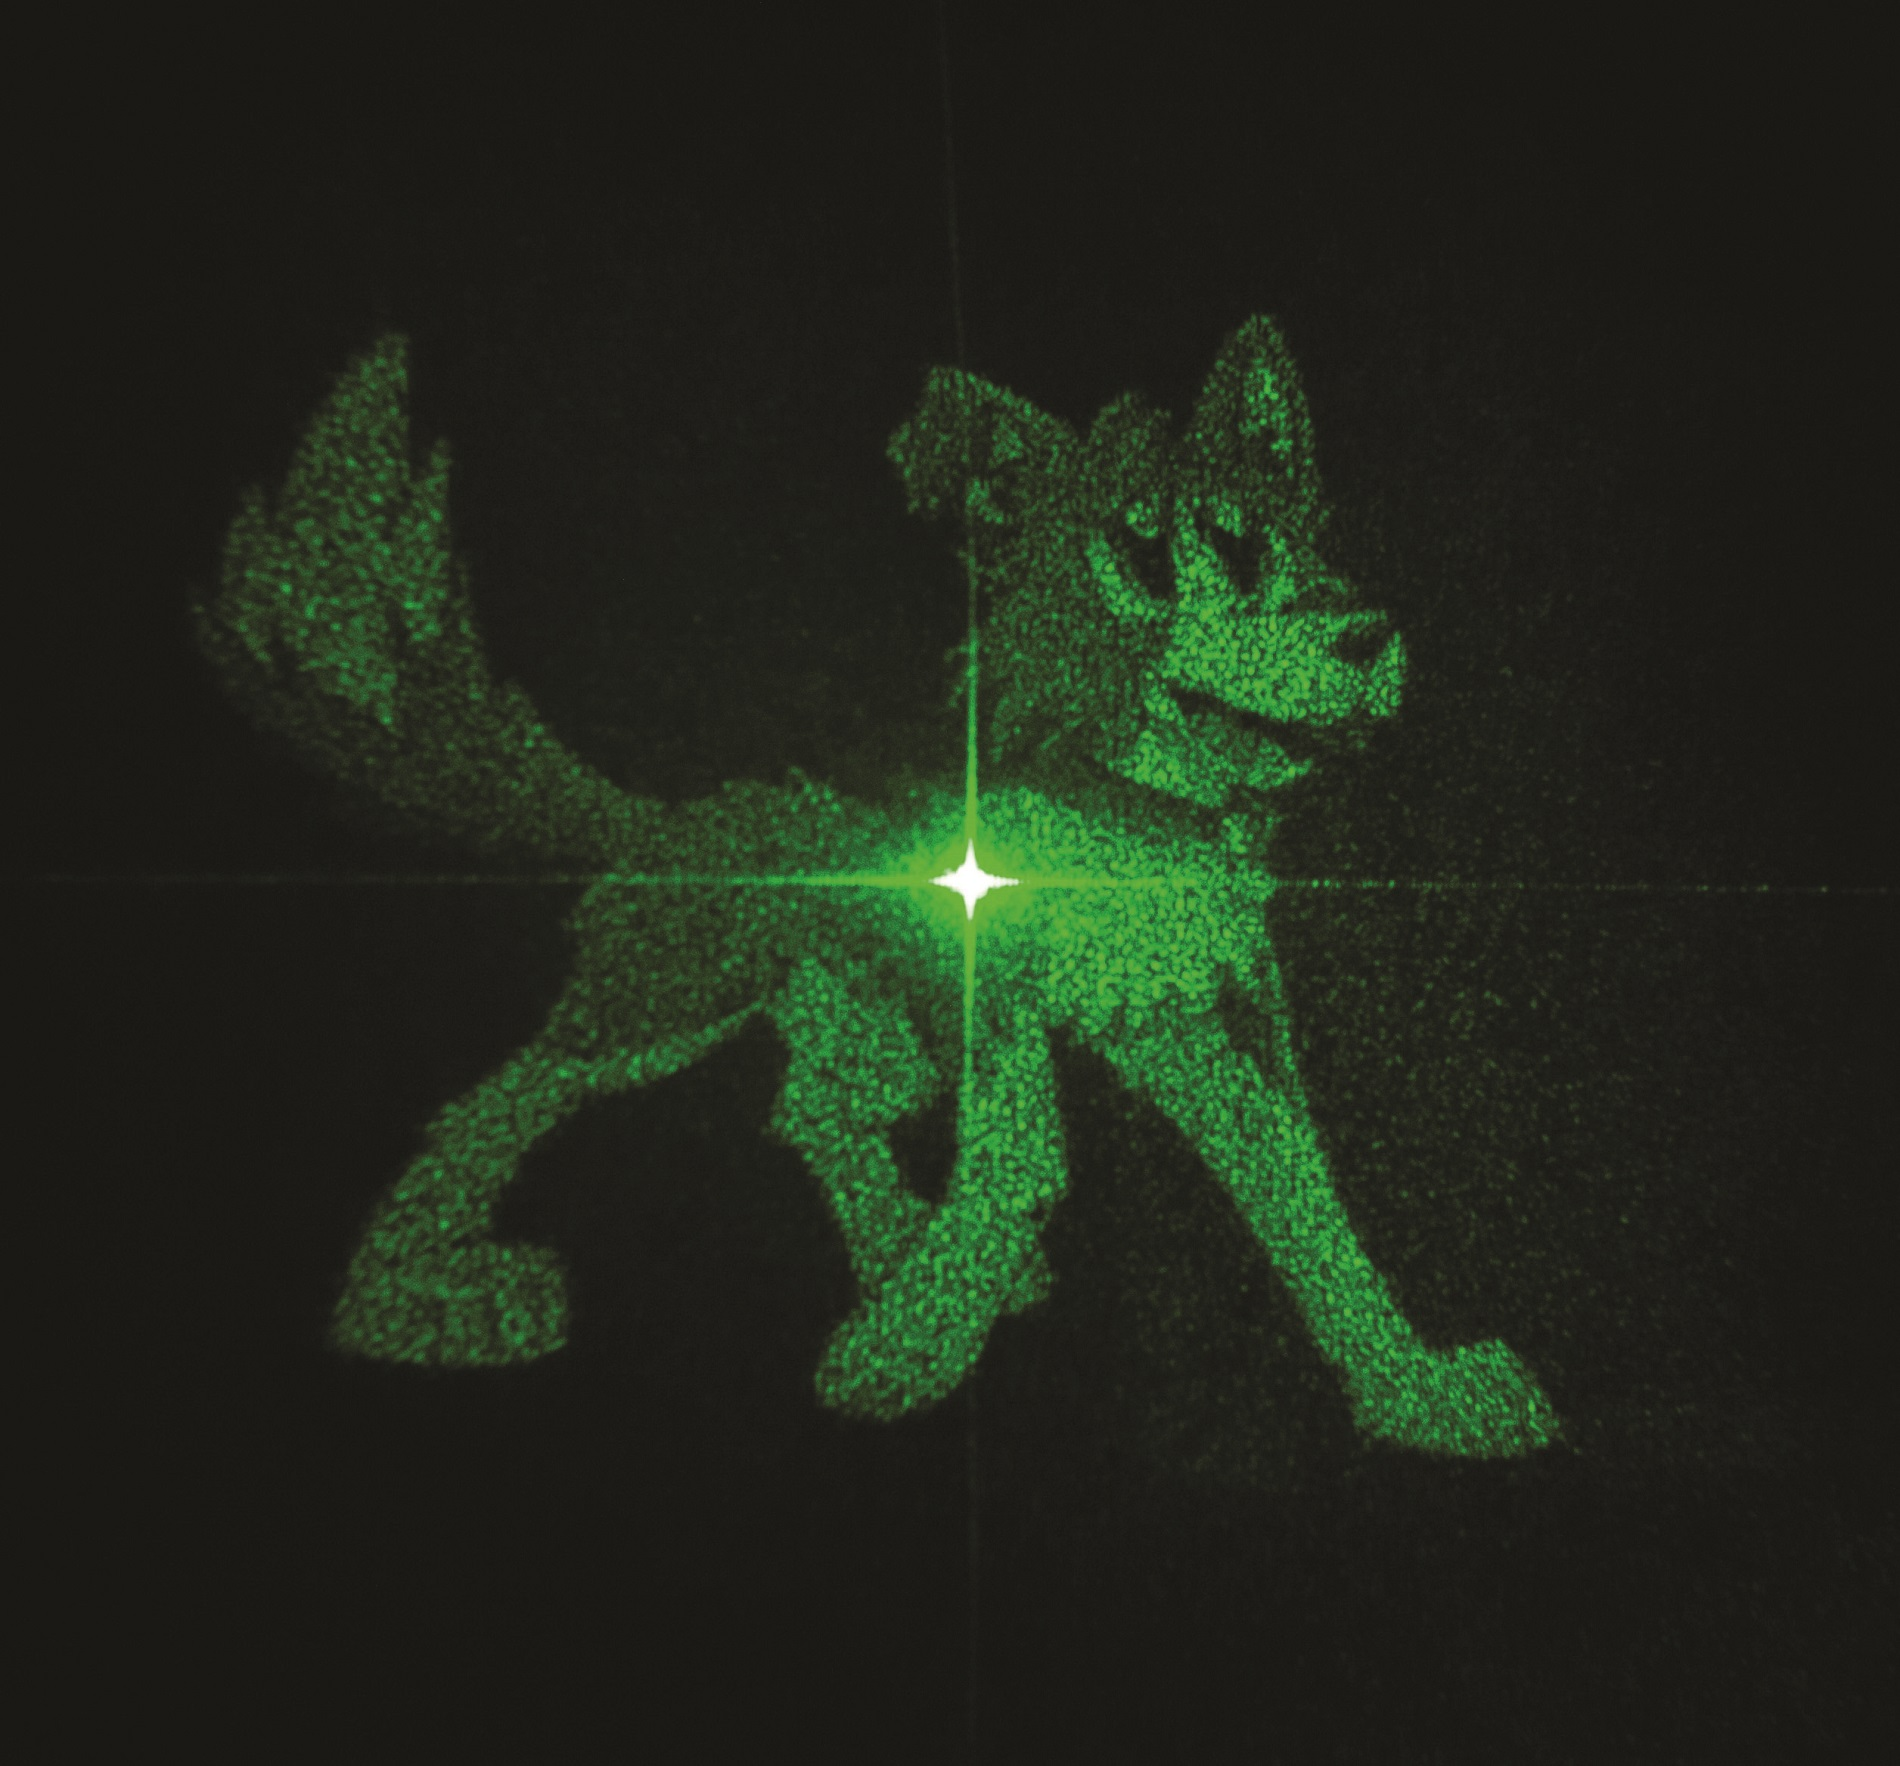 This hologram is one of two different holographic images encoded in a metasurface that can be unlocked separately with differently polarized light